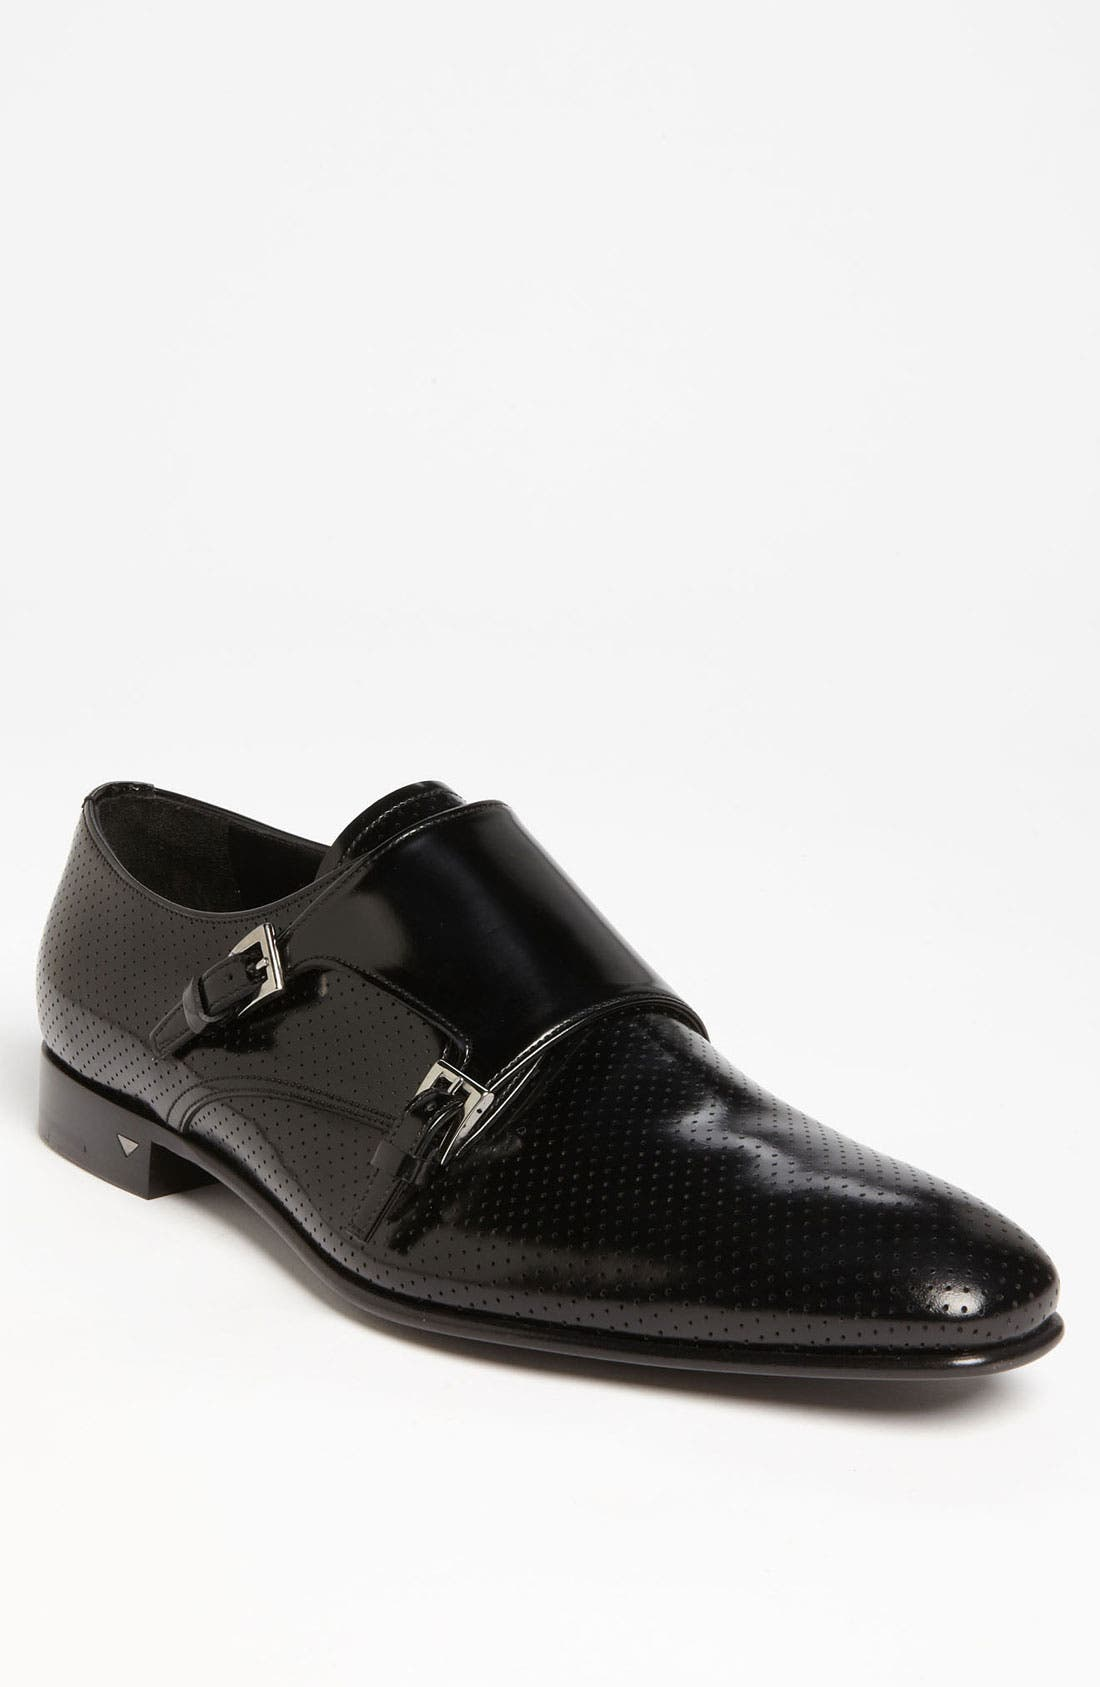 Alternate Image 1 Selected - Prada Perforated Double Monk Strap Slip-On